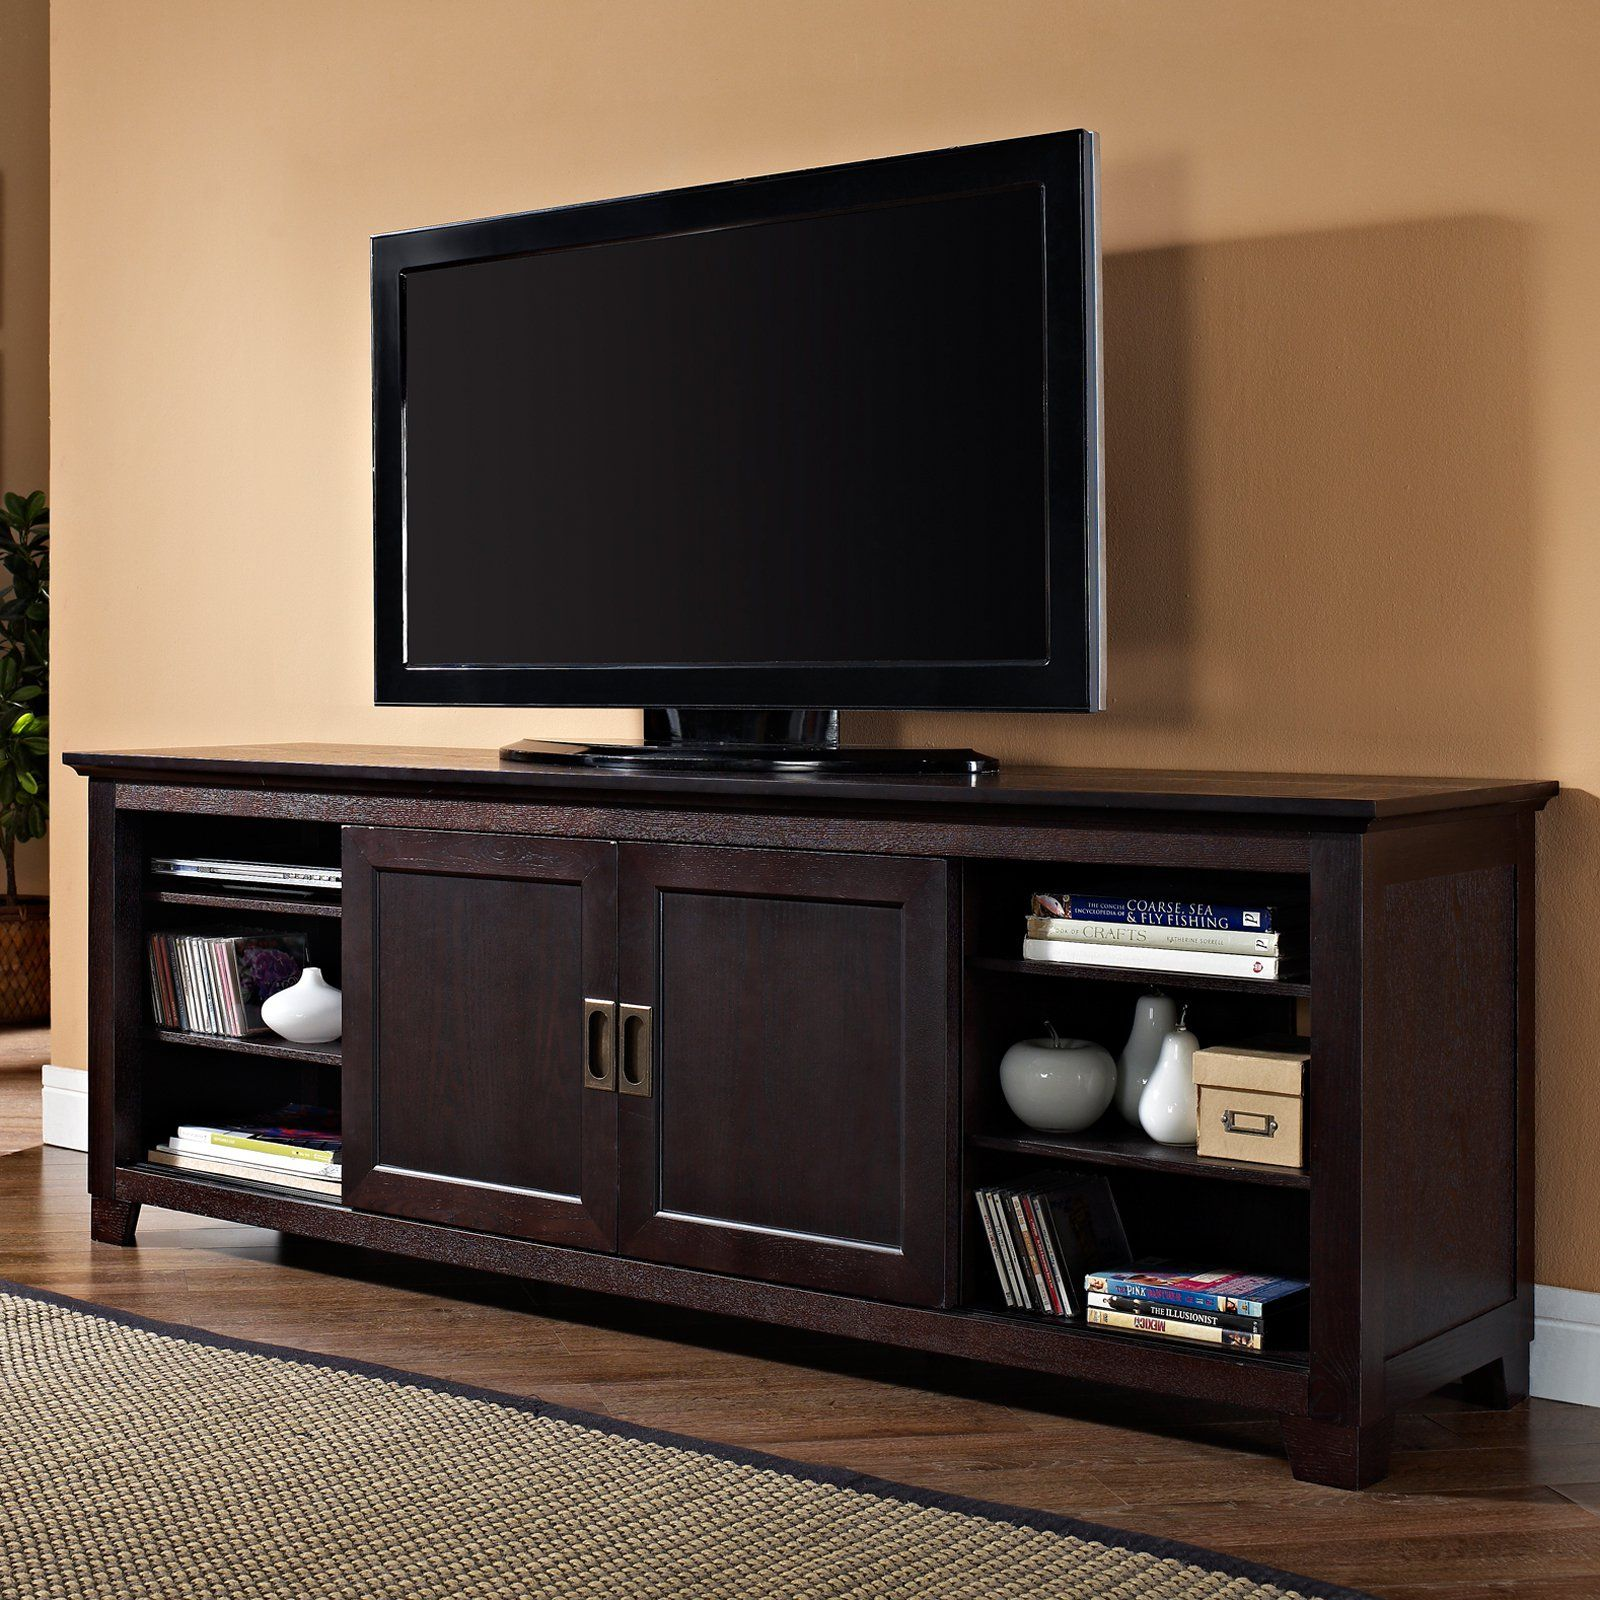 Walker Edison 70 In Wood Tv Stand With Sliding Doors Espresso Tv Stand Wood Sliding Door Tv Stand Espresso Tv Stand